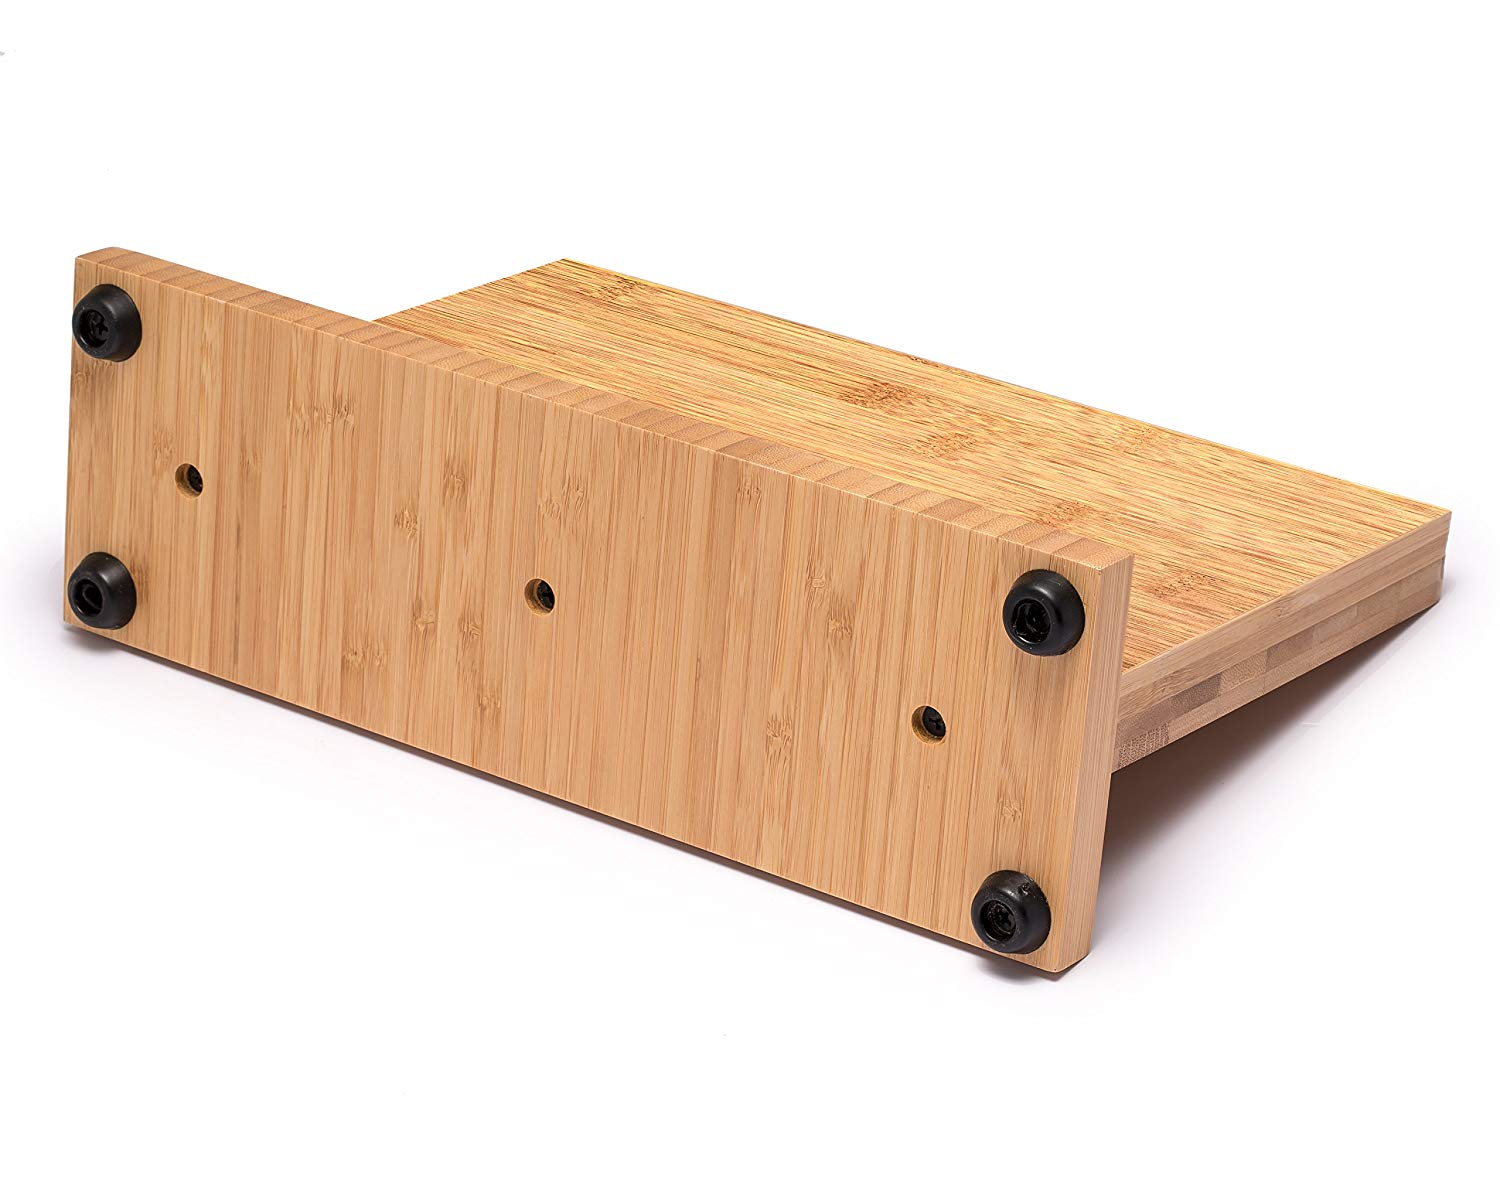 The Bamboo Knife Board